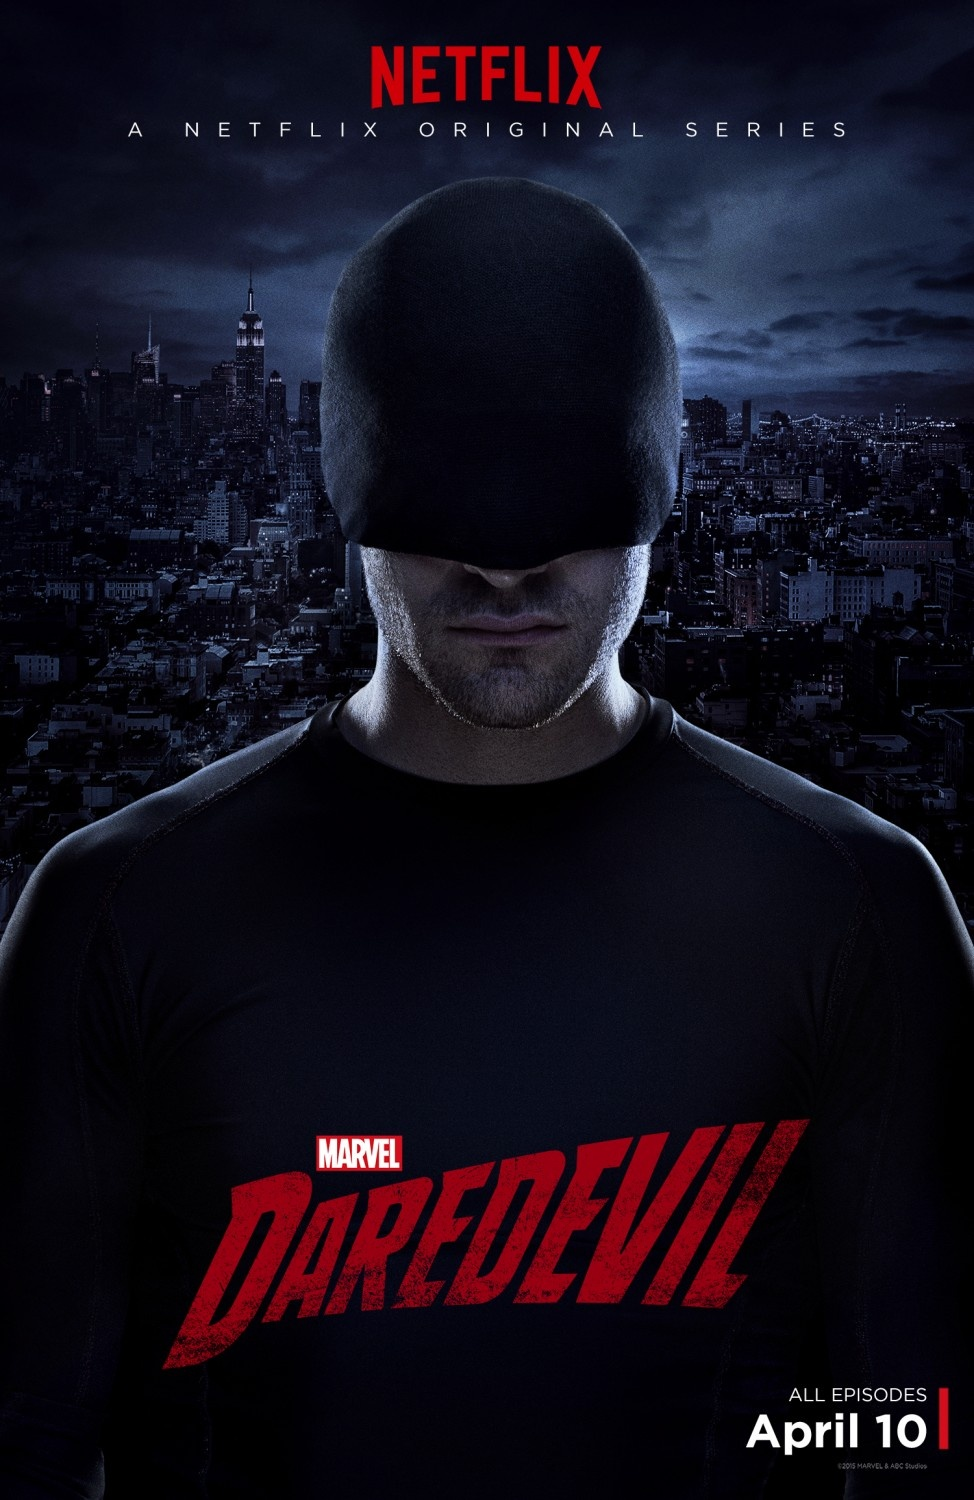 Les séries Marvel Made in Netflix Daredevil-Poster-Saison1-6